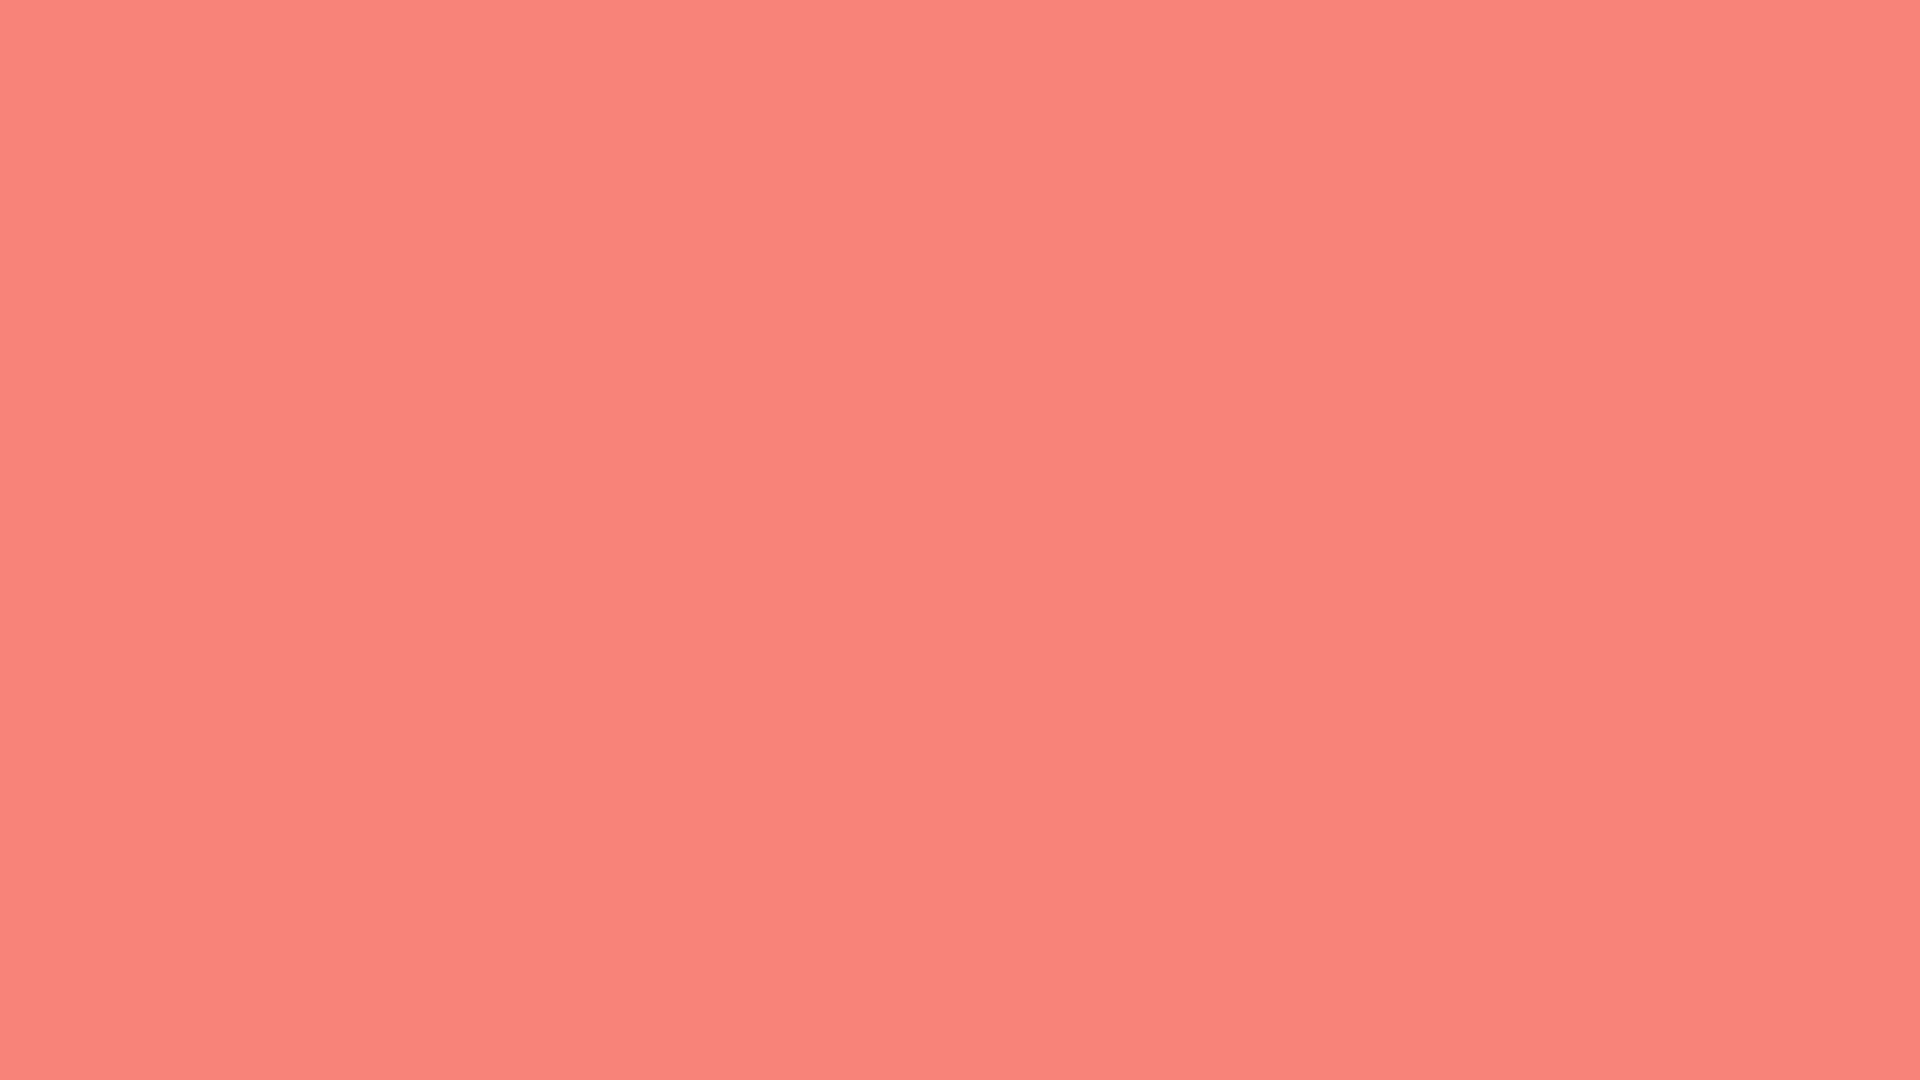 Coral Pink   Wallpaper High Definition High Quality Widescreen 1920x1080